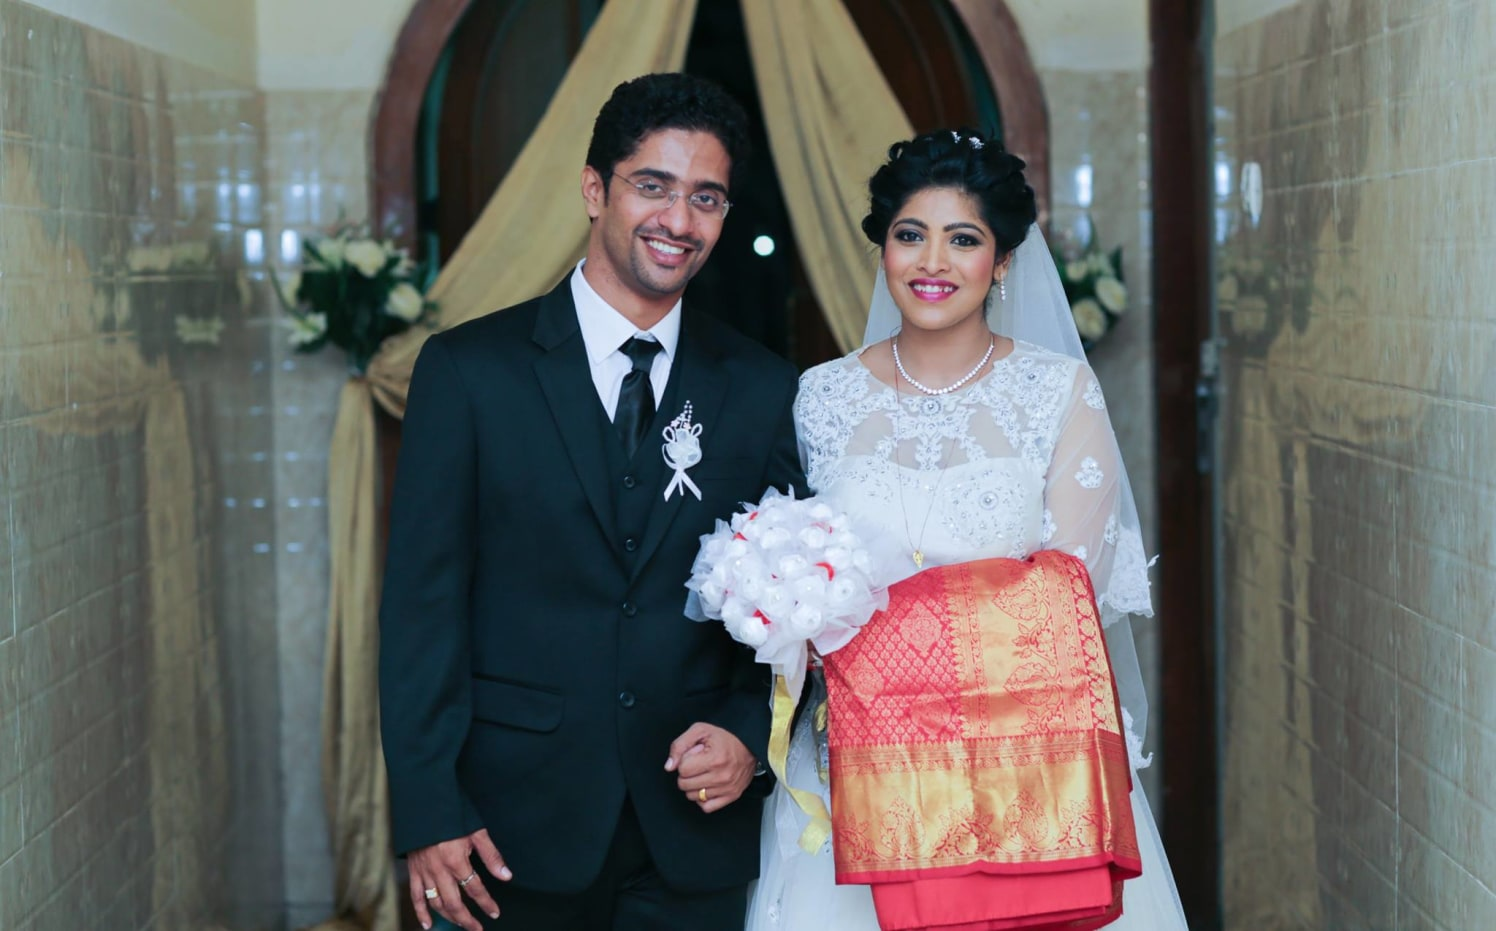 Christian Bride and Groom Looking Appealing in Formal Wear by Lloyd Bangera Wedding-photography | Weddings Photos & Ideas